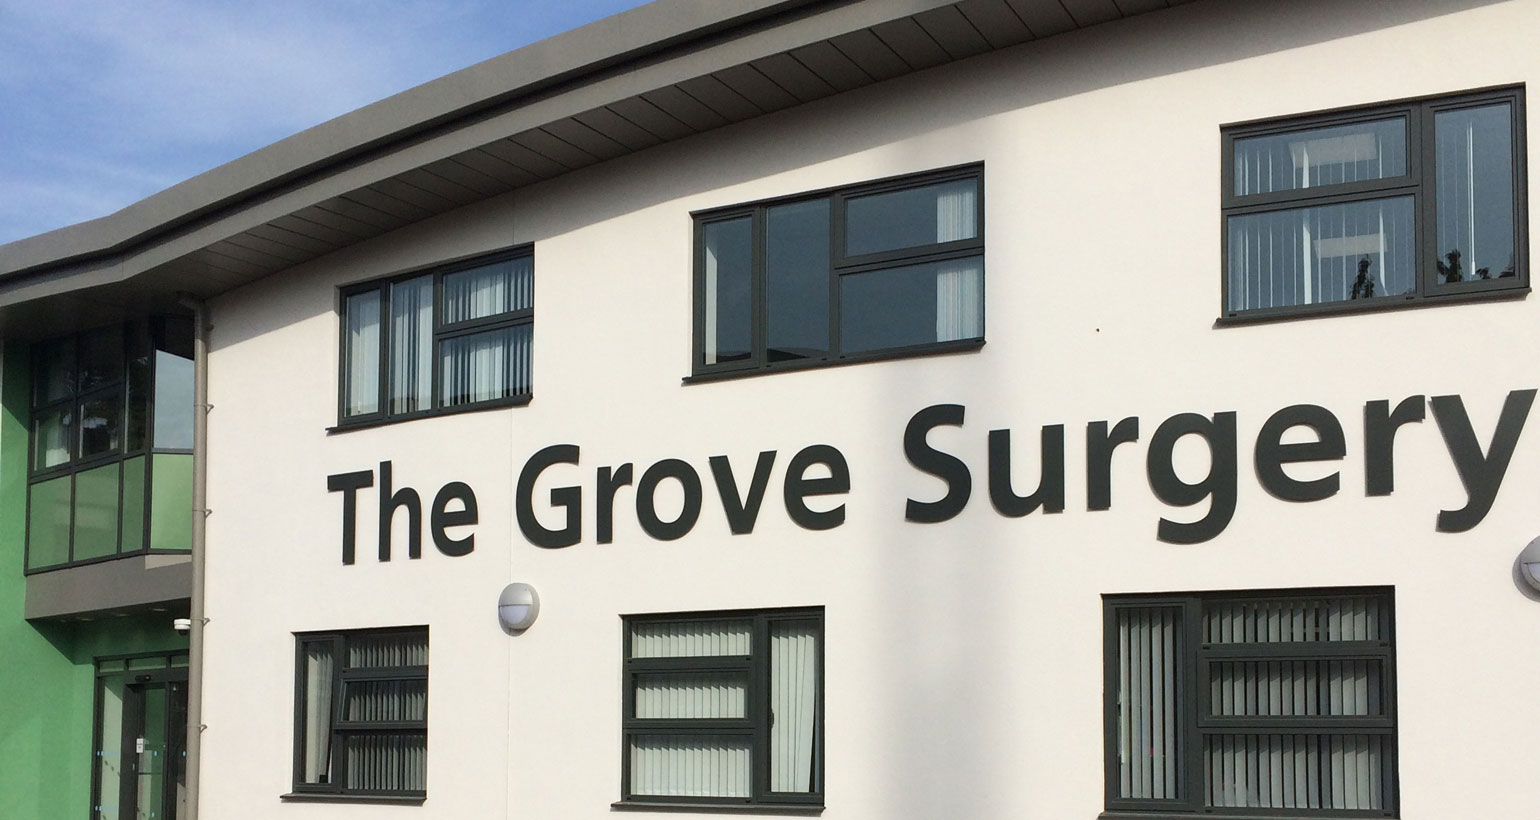 Painting The Grove Surgery GP in Christchurch